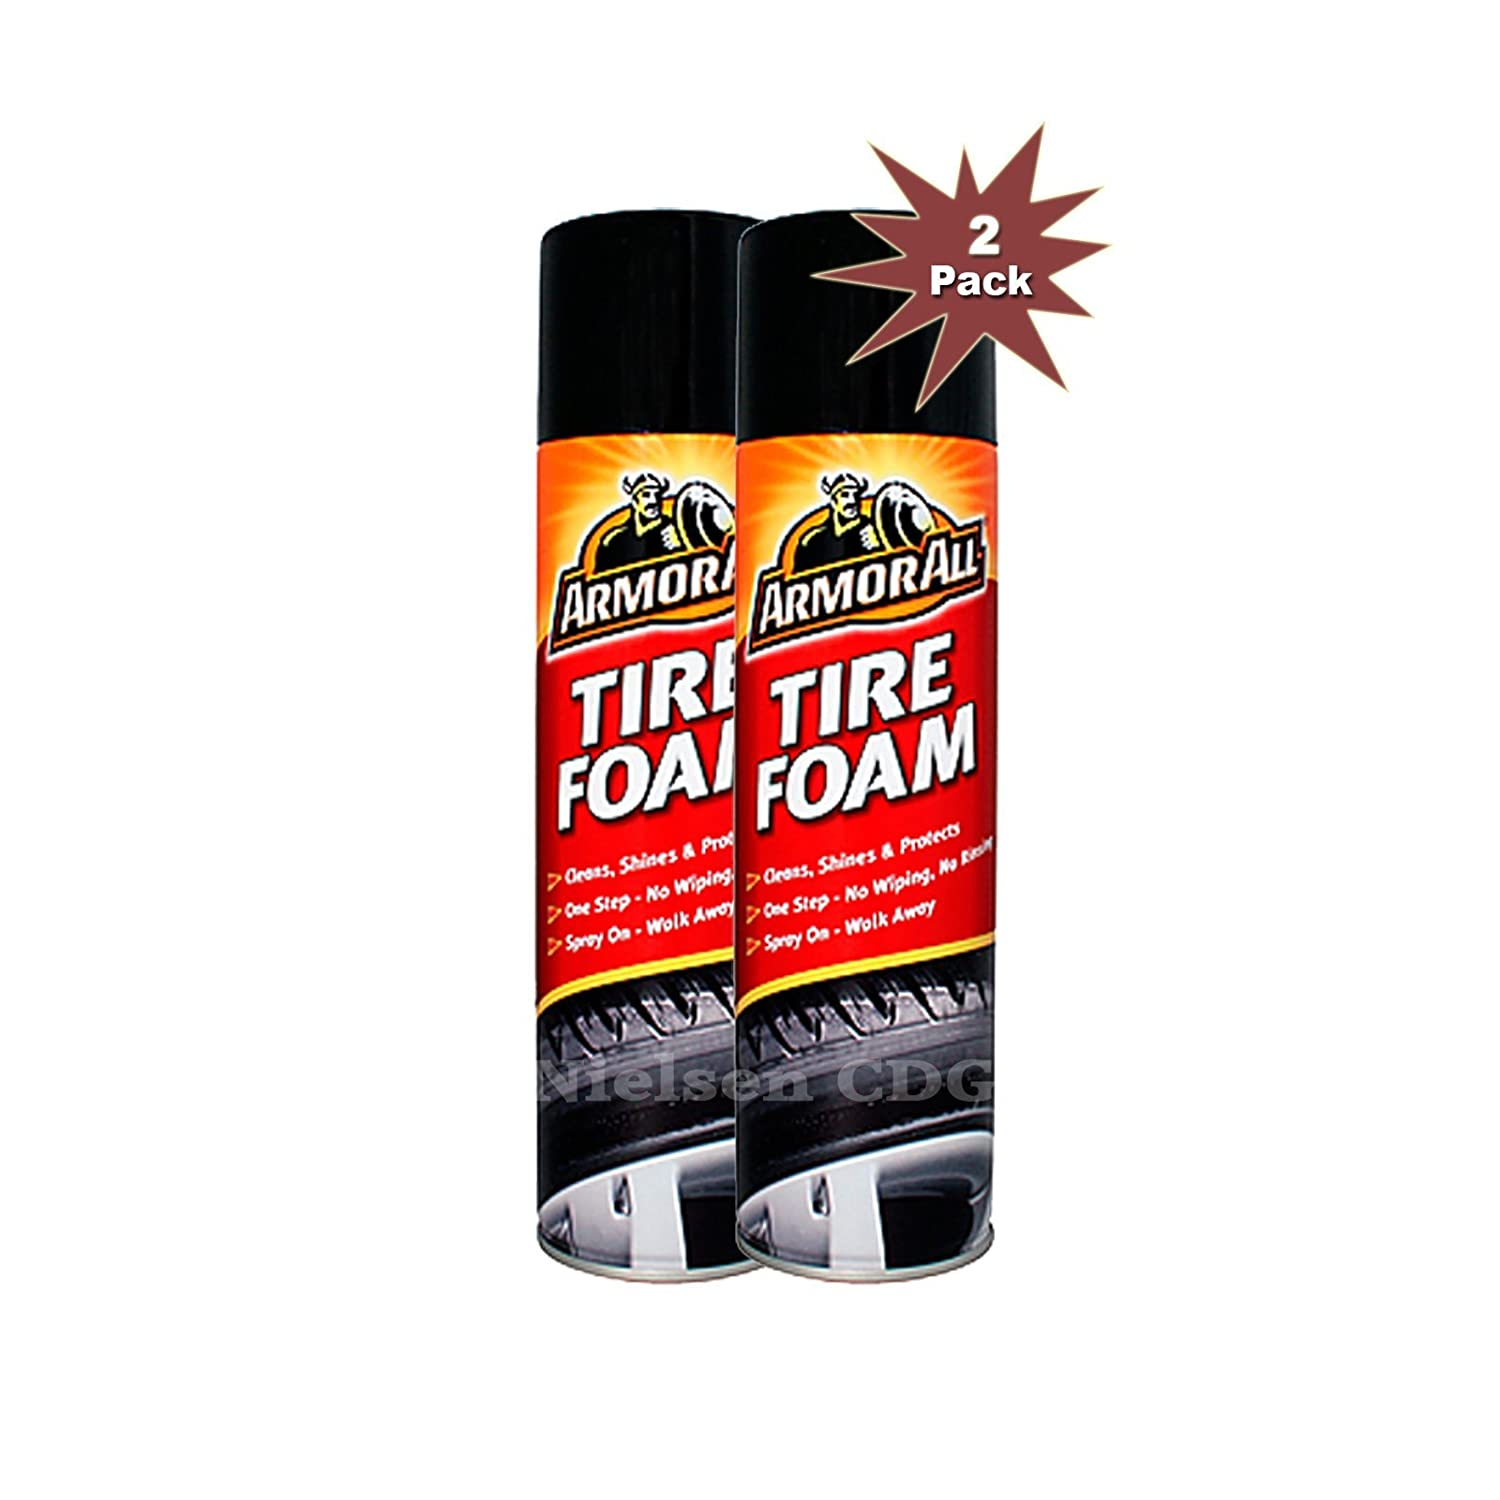 Armor All® Tire Foam Cleaner 2x500ml = 2pk Armor All®